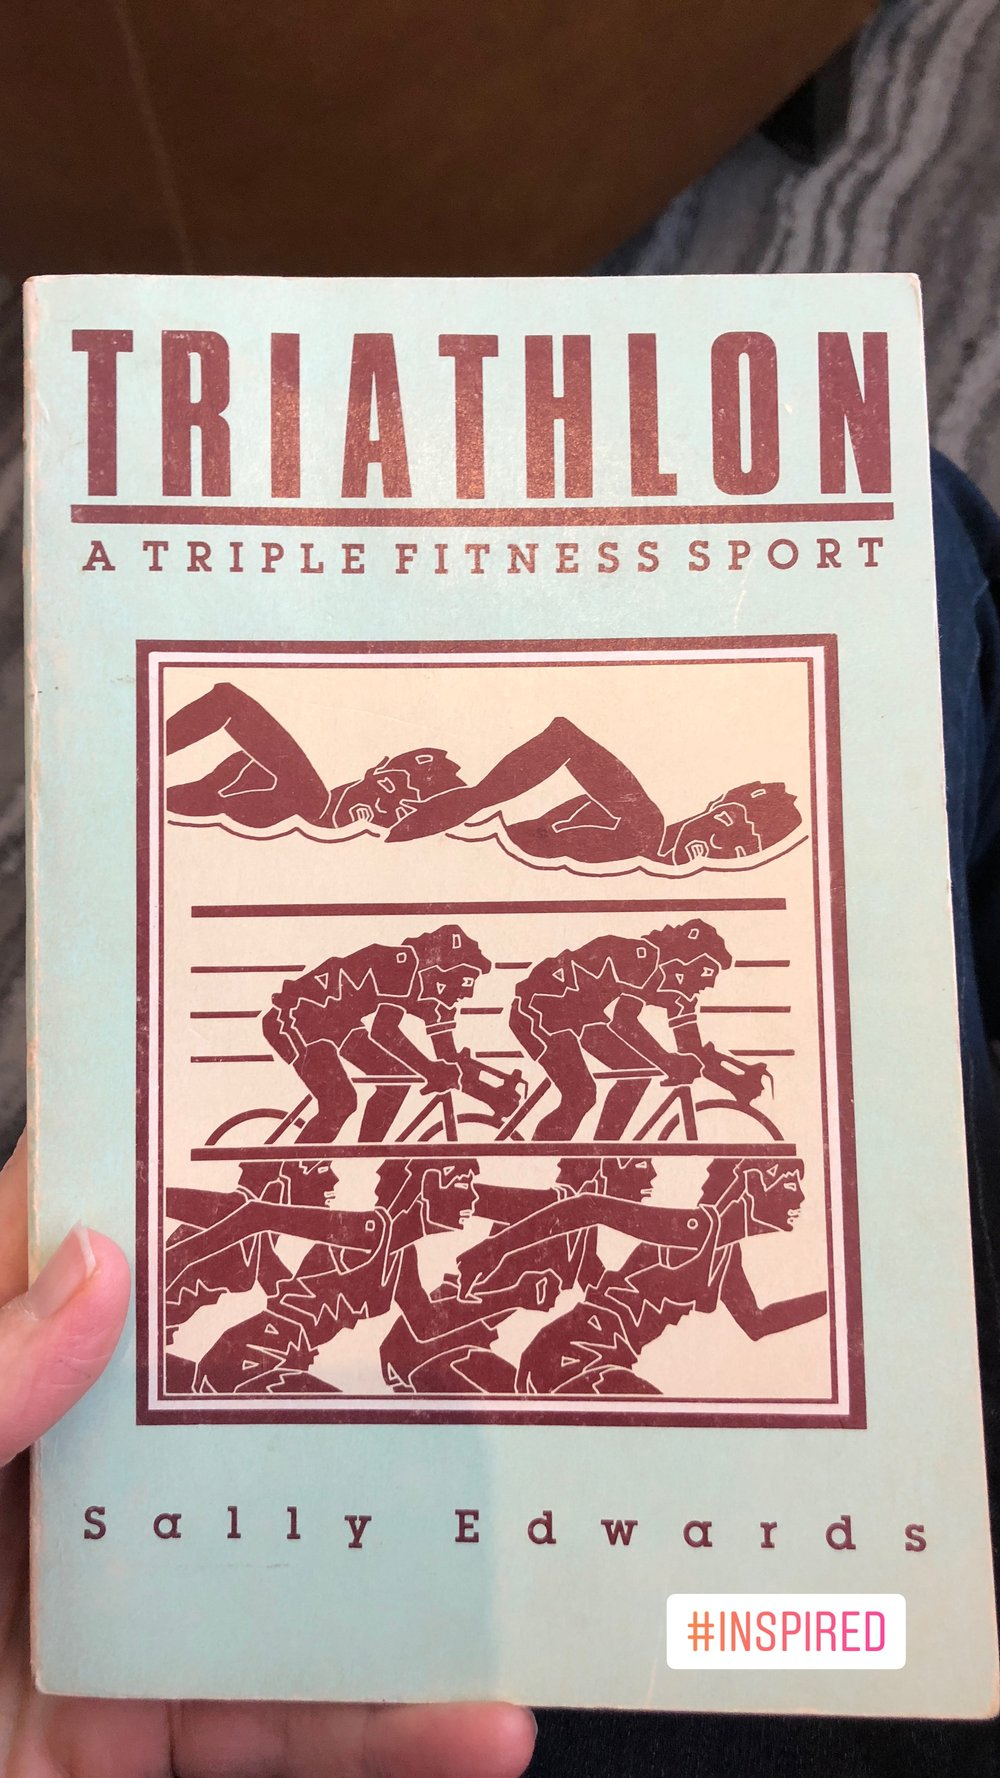 Sally Edwards's self-published first book on Women in triathlon.